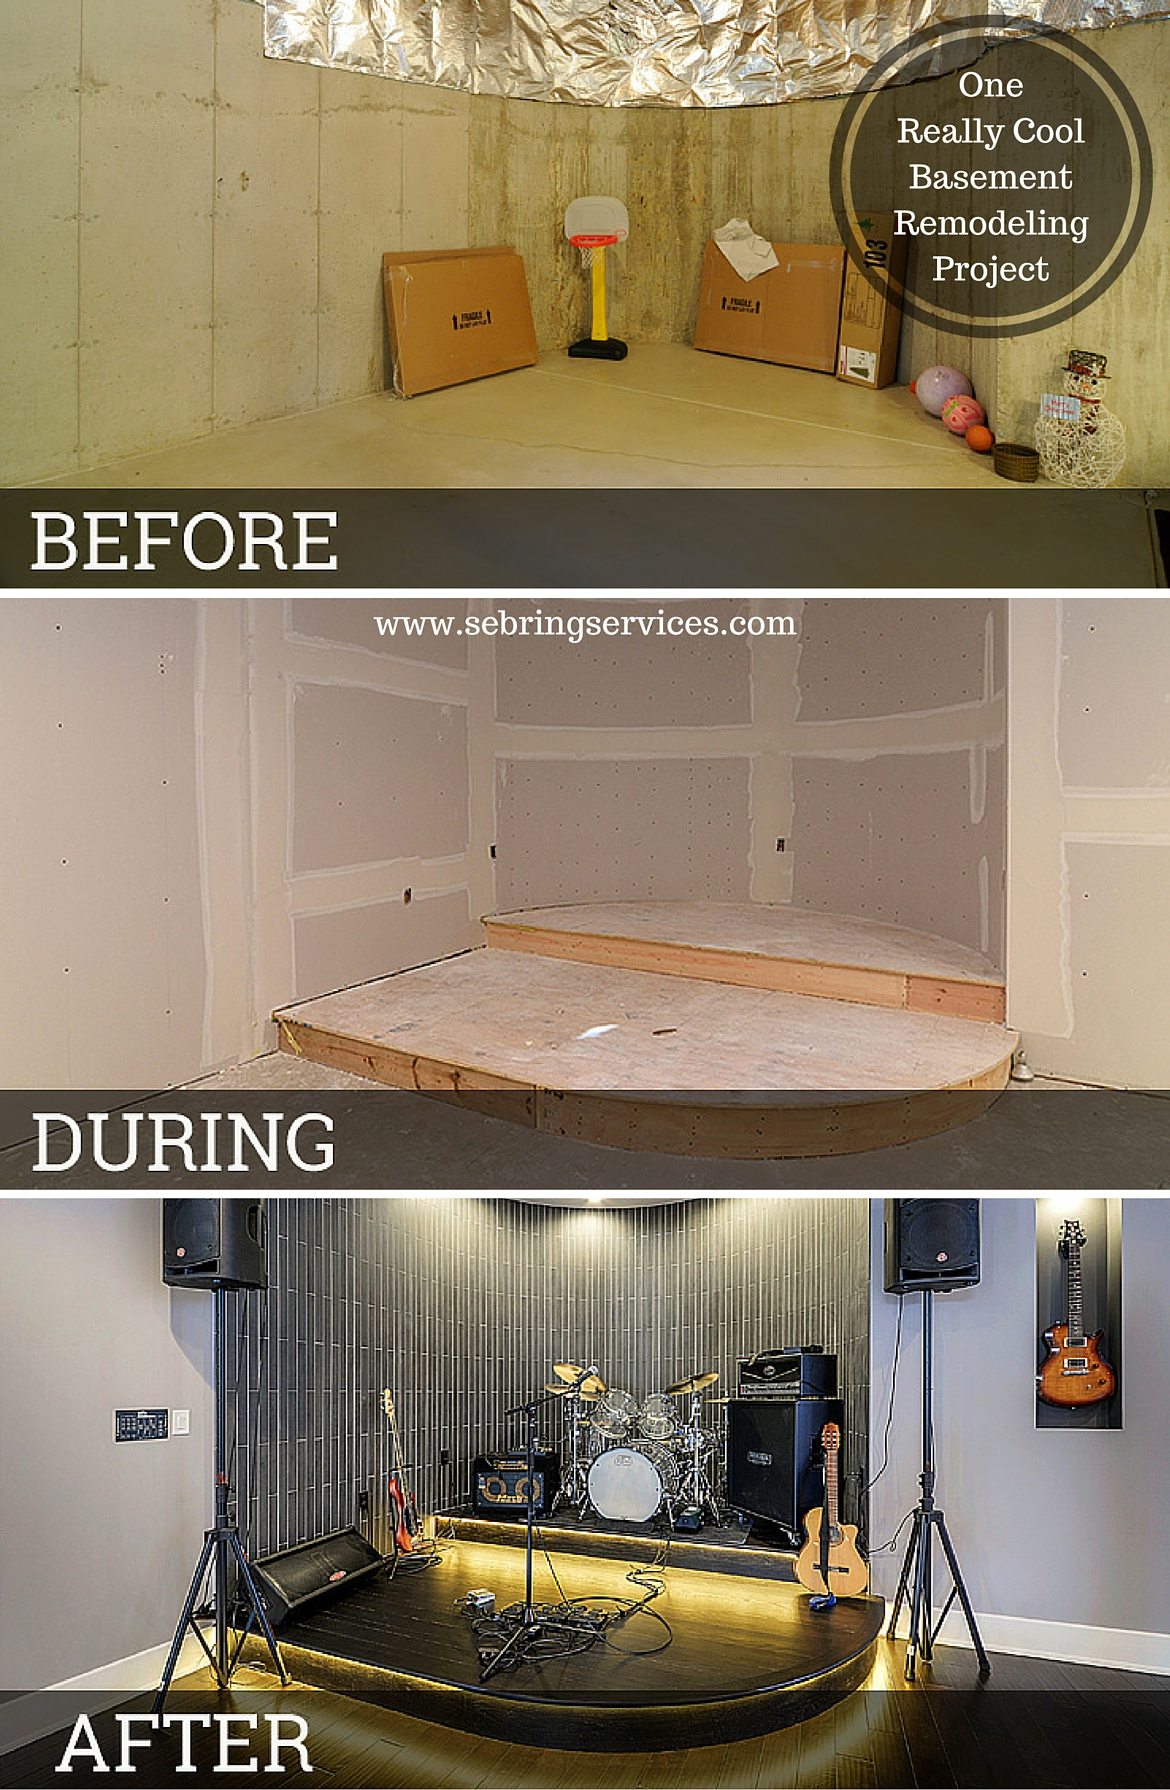 Before & After: One Really Cool Basement Remodeling